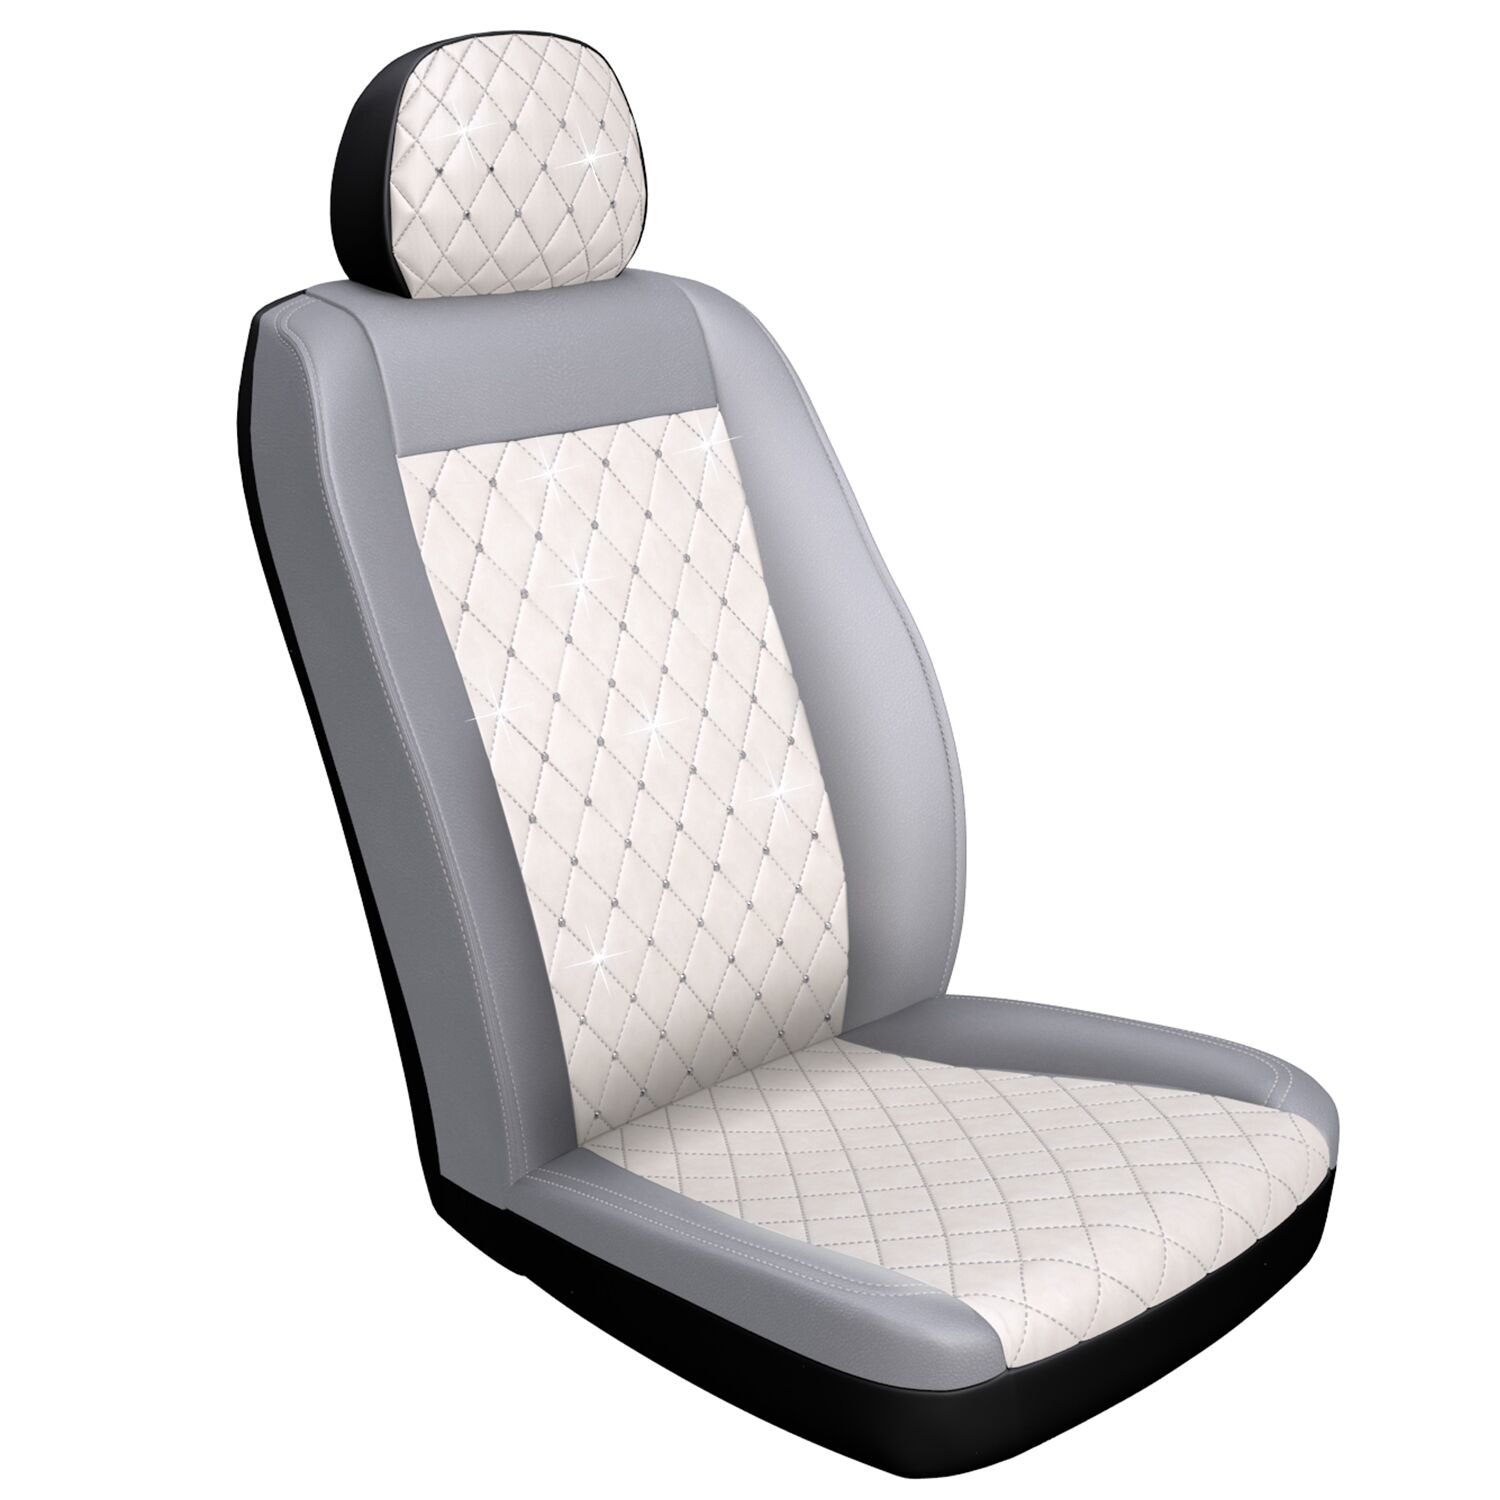 Admirable Premium Diamond Seat Cover With Crystals From Swarovski White Inzonedesignstudio Interior Chair Design Inzonedesignstudiocom